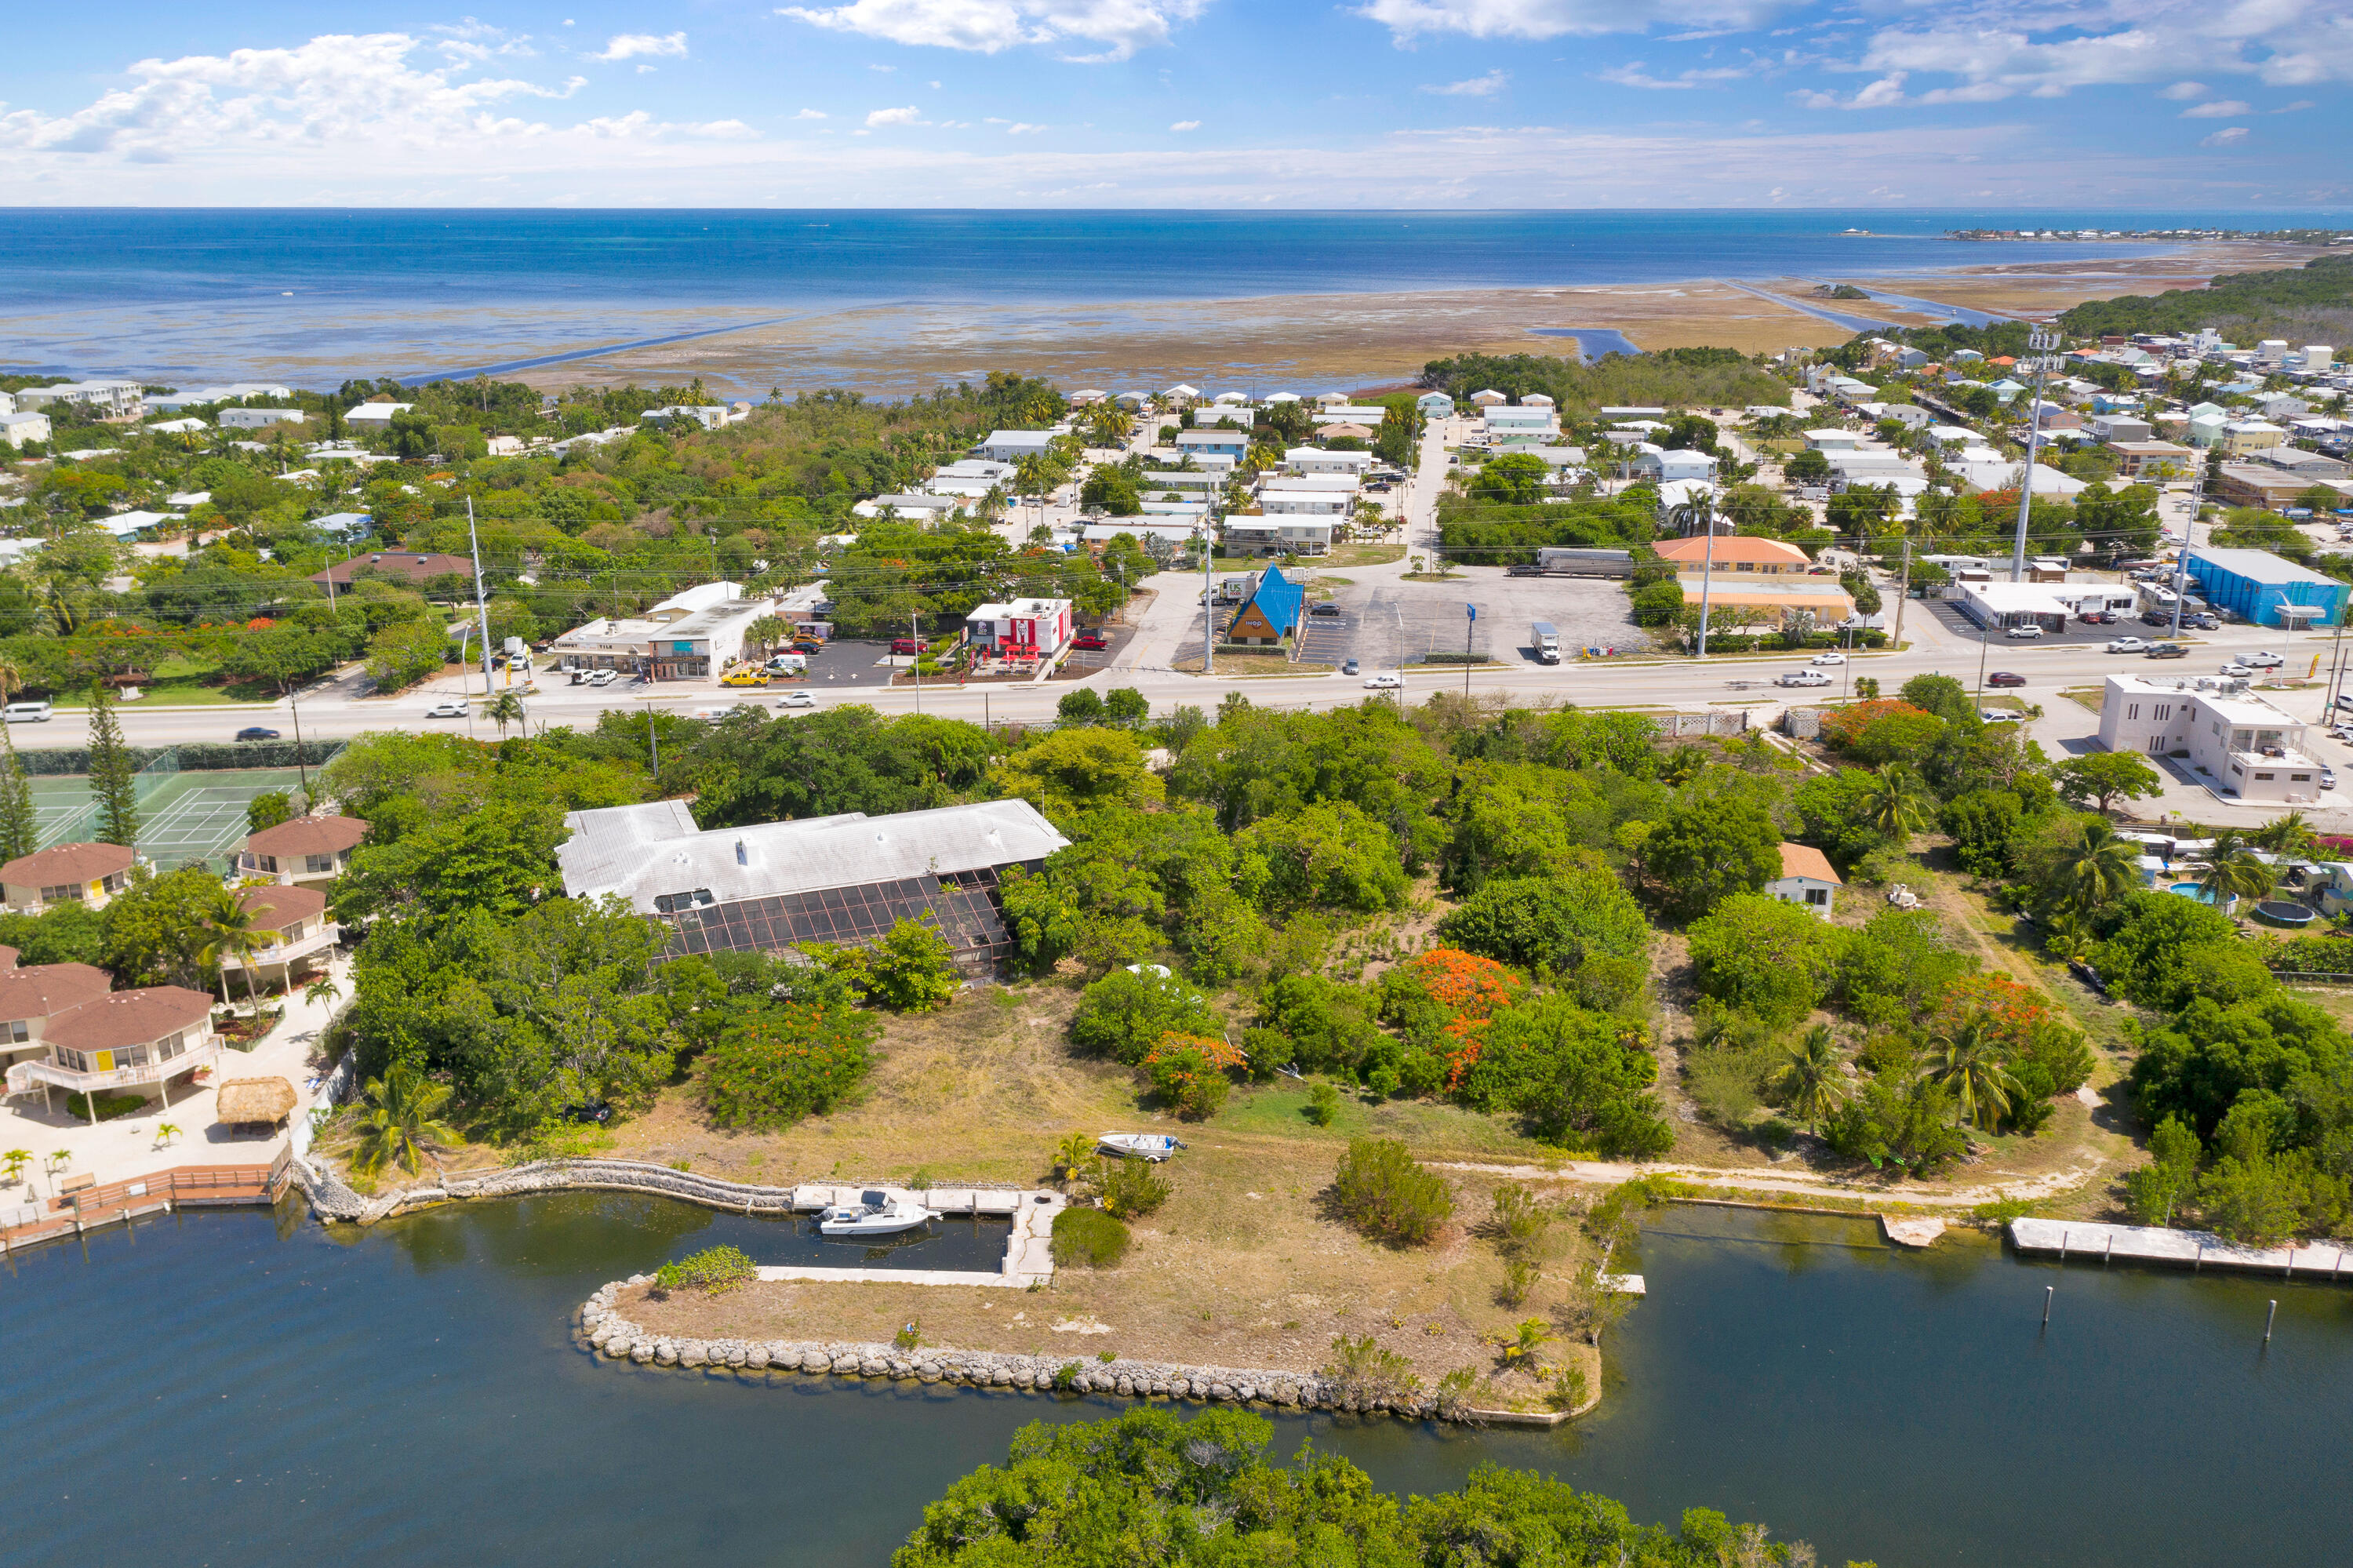 15- Sombrero Bch Rd To Vaca Cut Gulfside Real Estate Listings Main Image